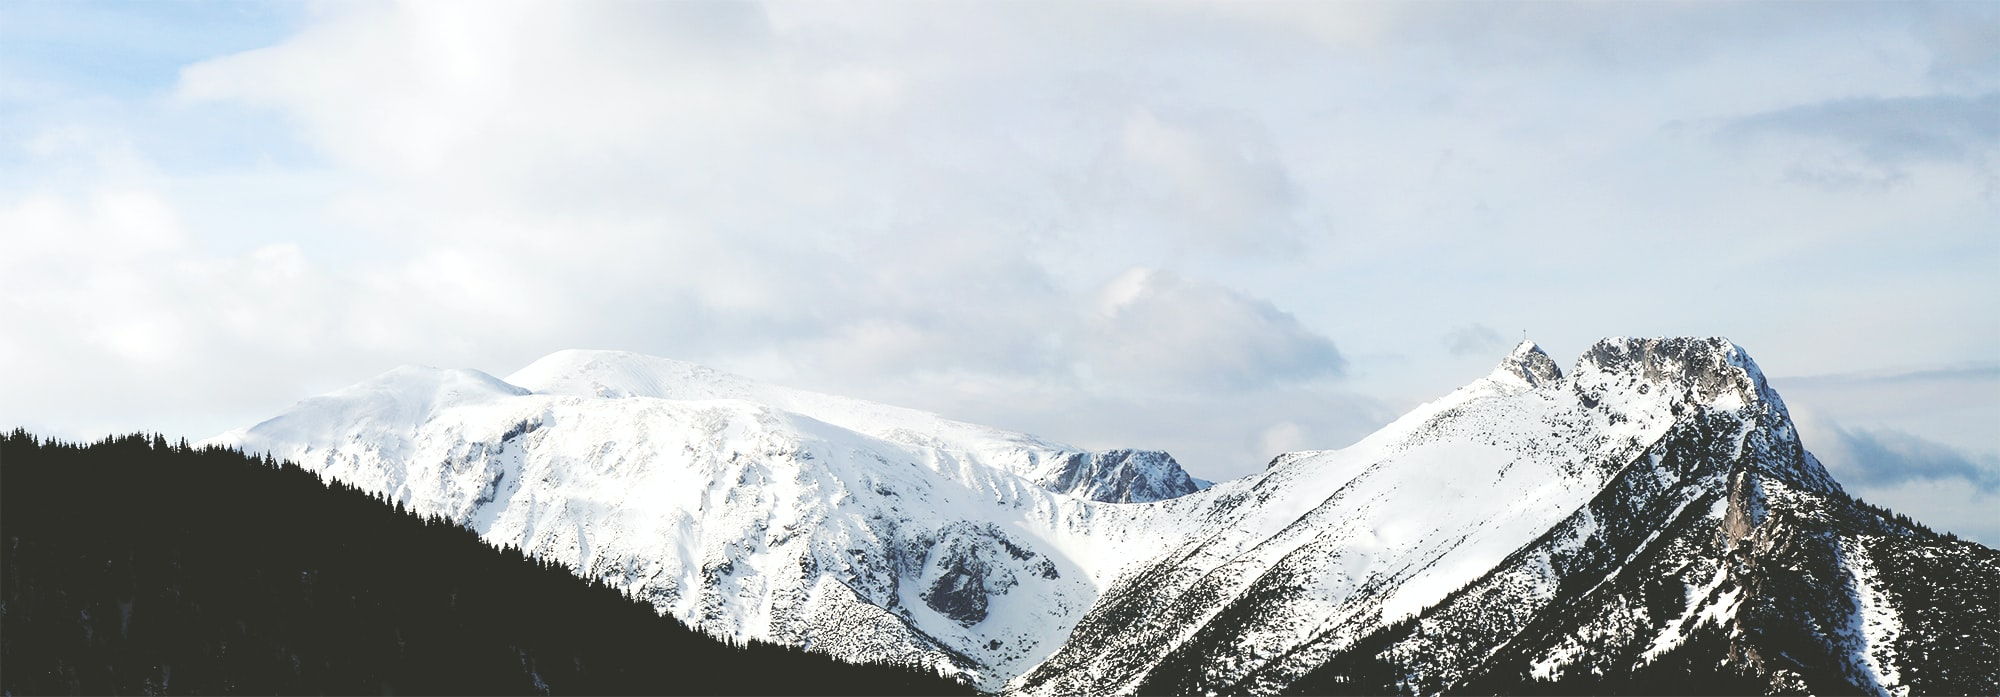 snow capped mountain under white clouds during daytime